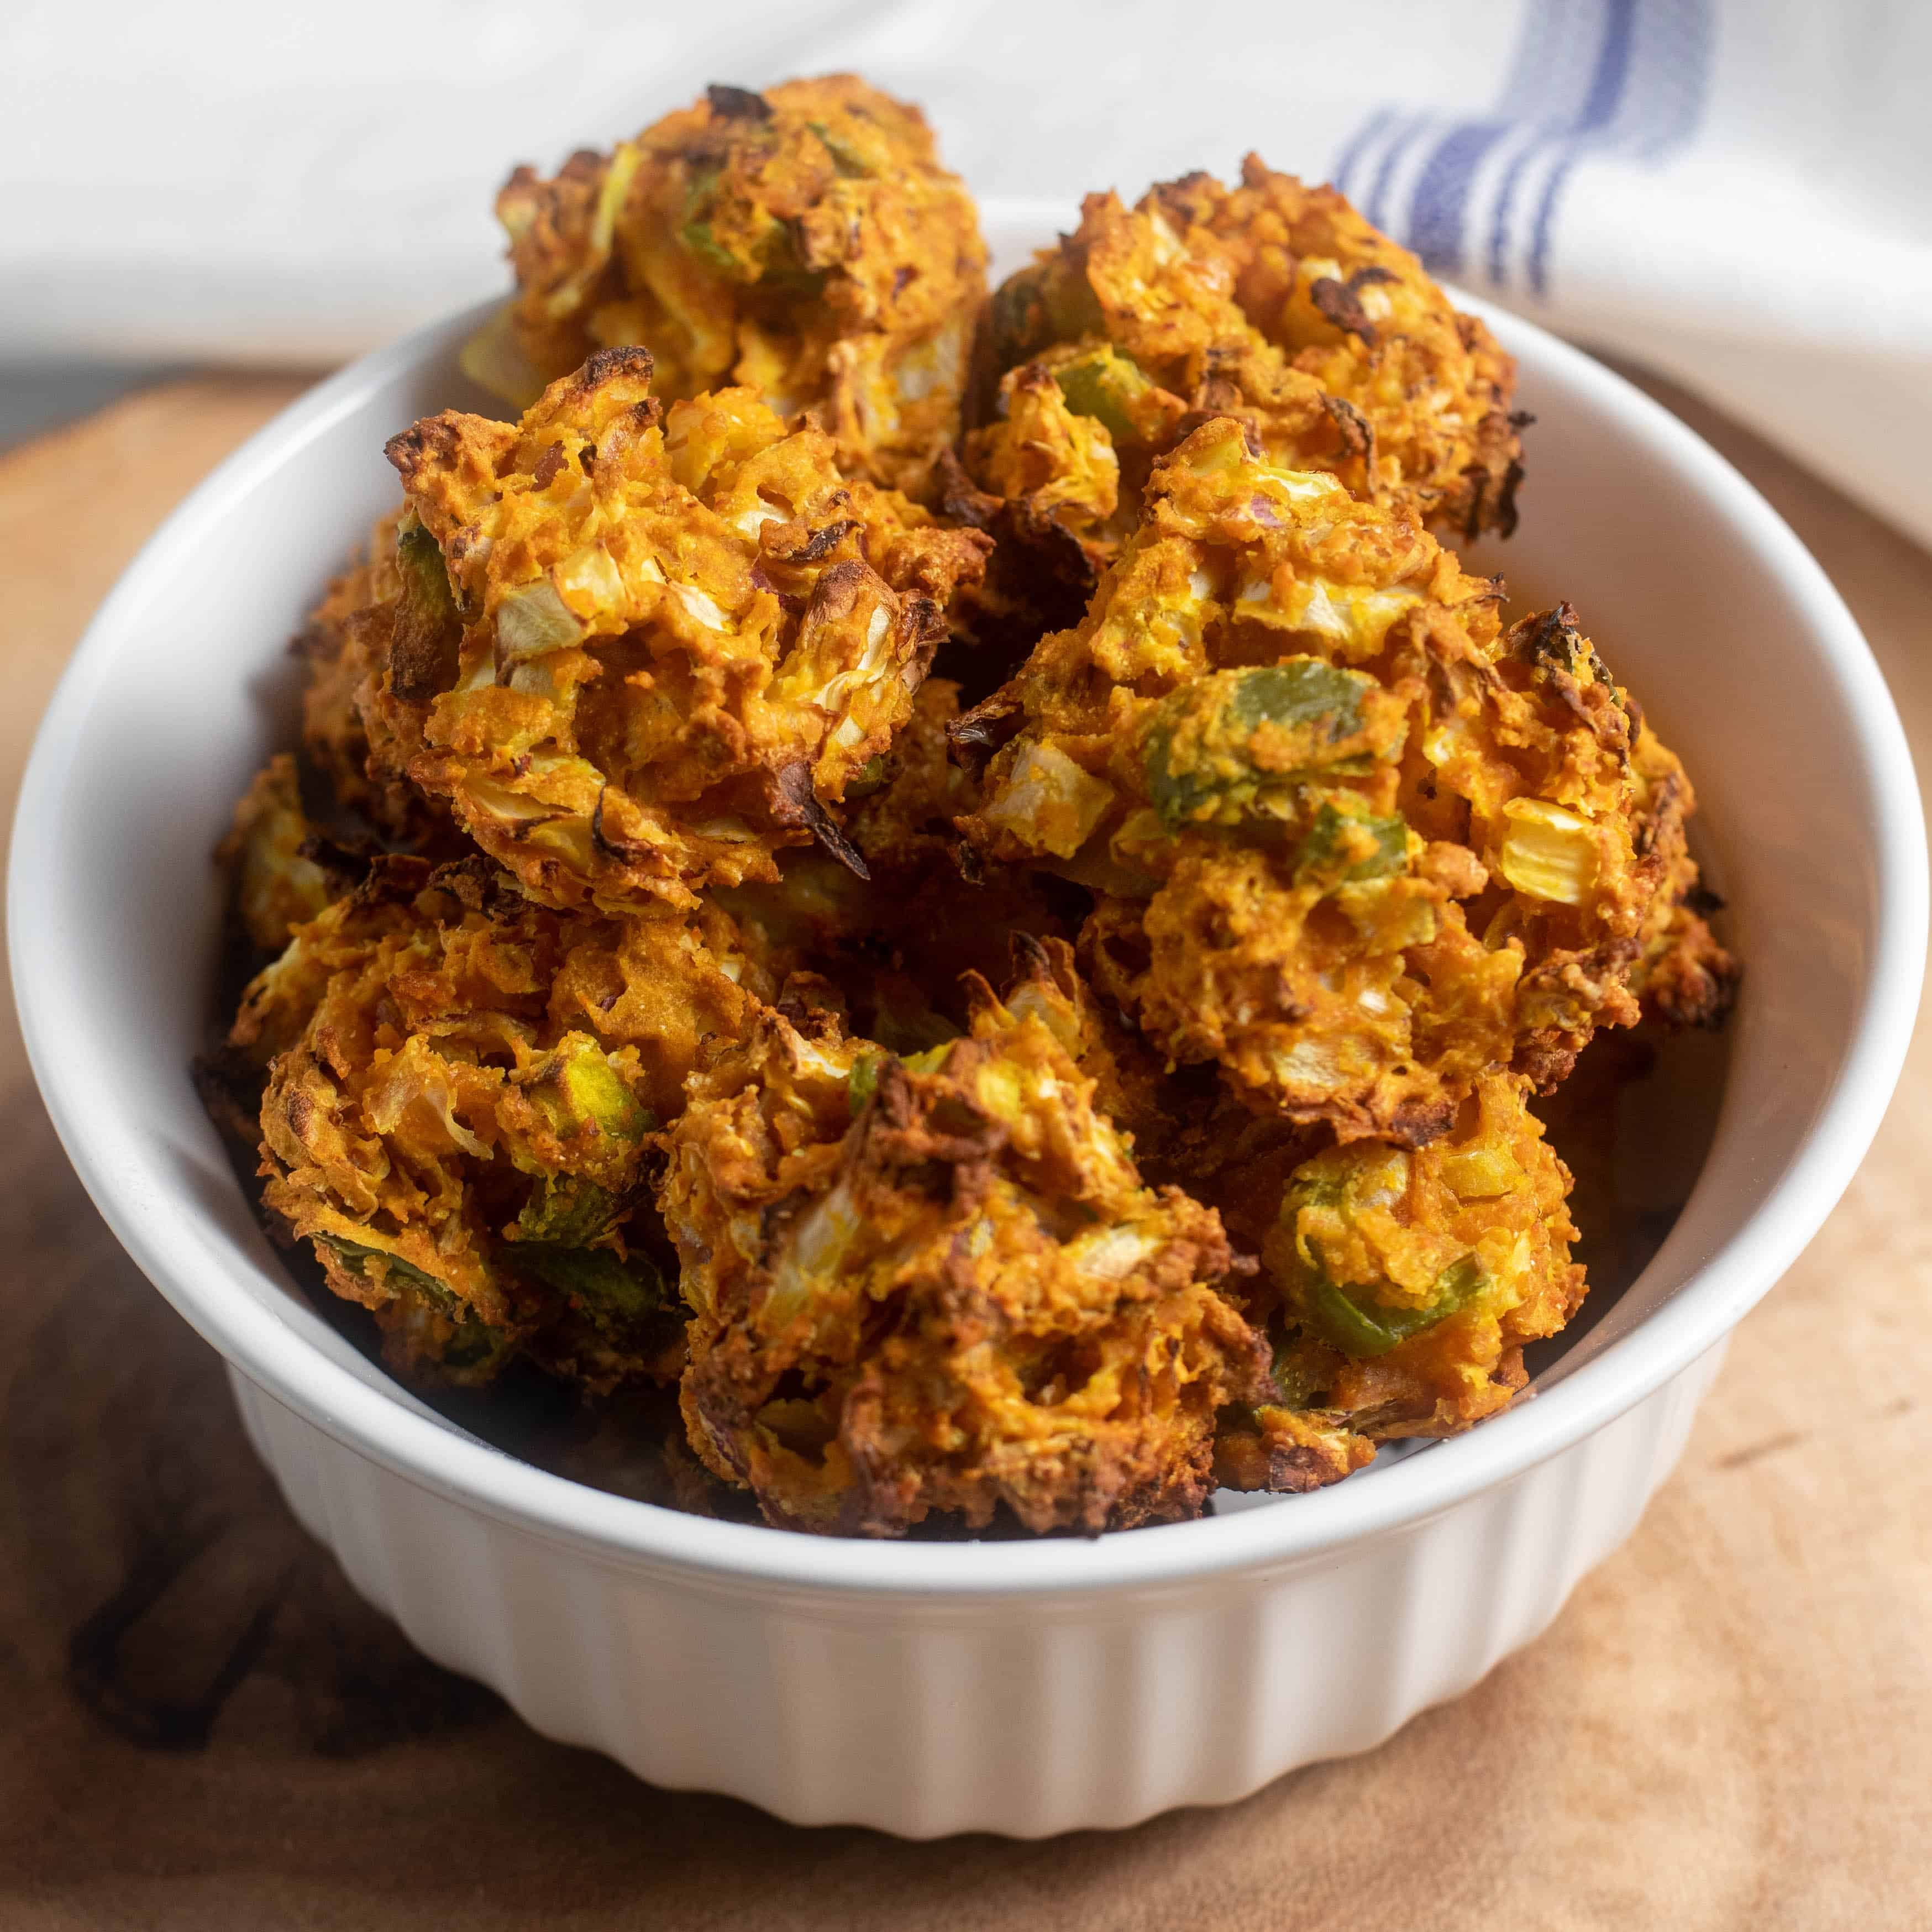 Delicious vegan fritters using chickpea flour as binding agent